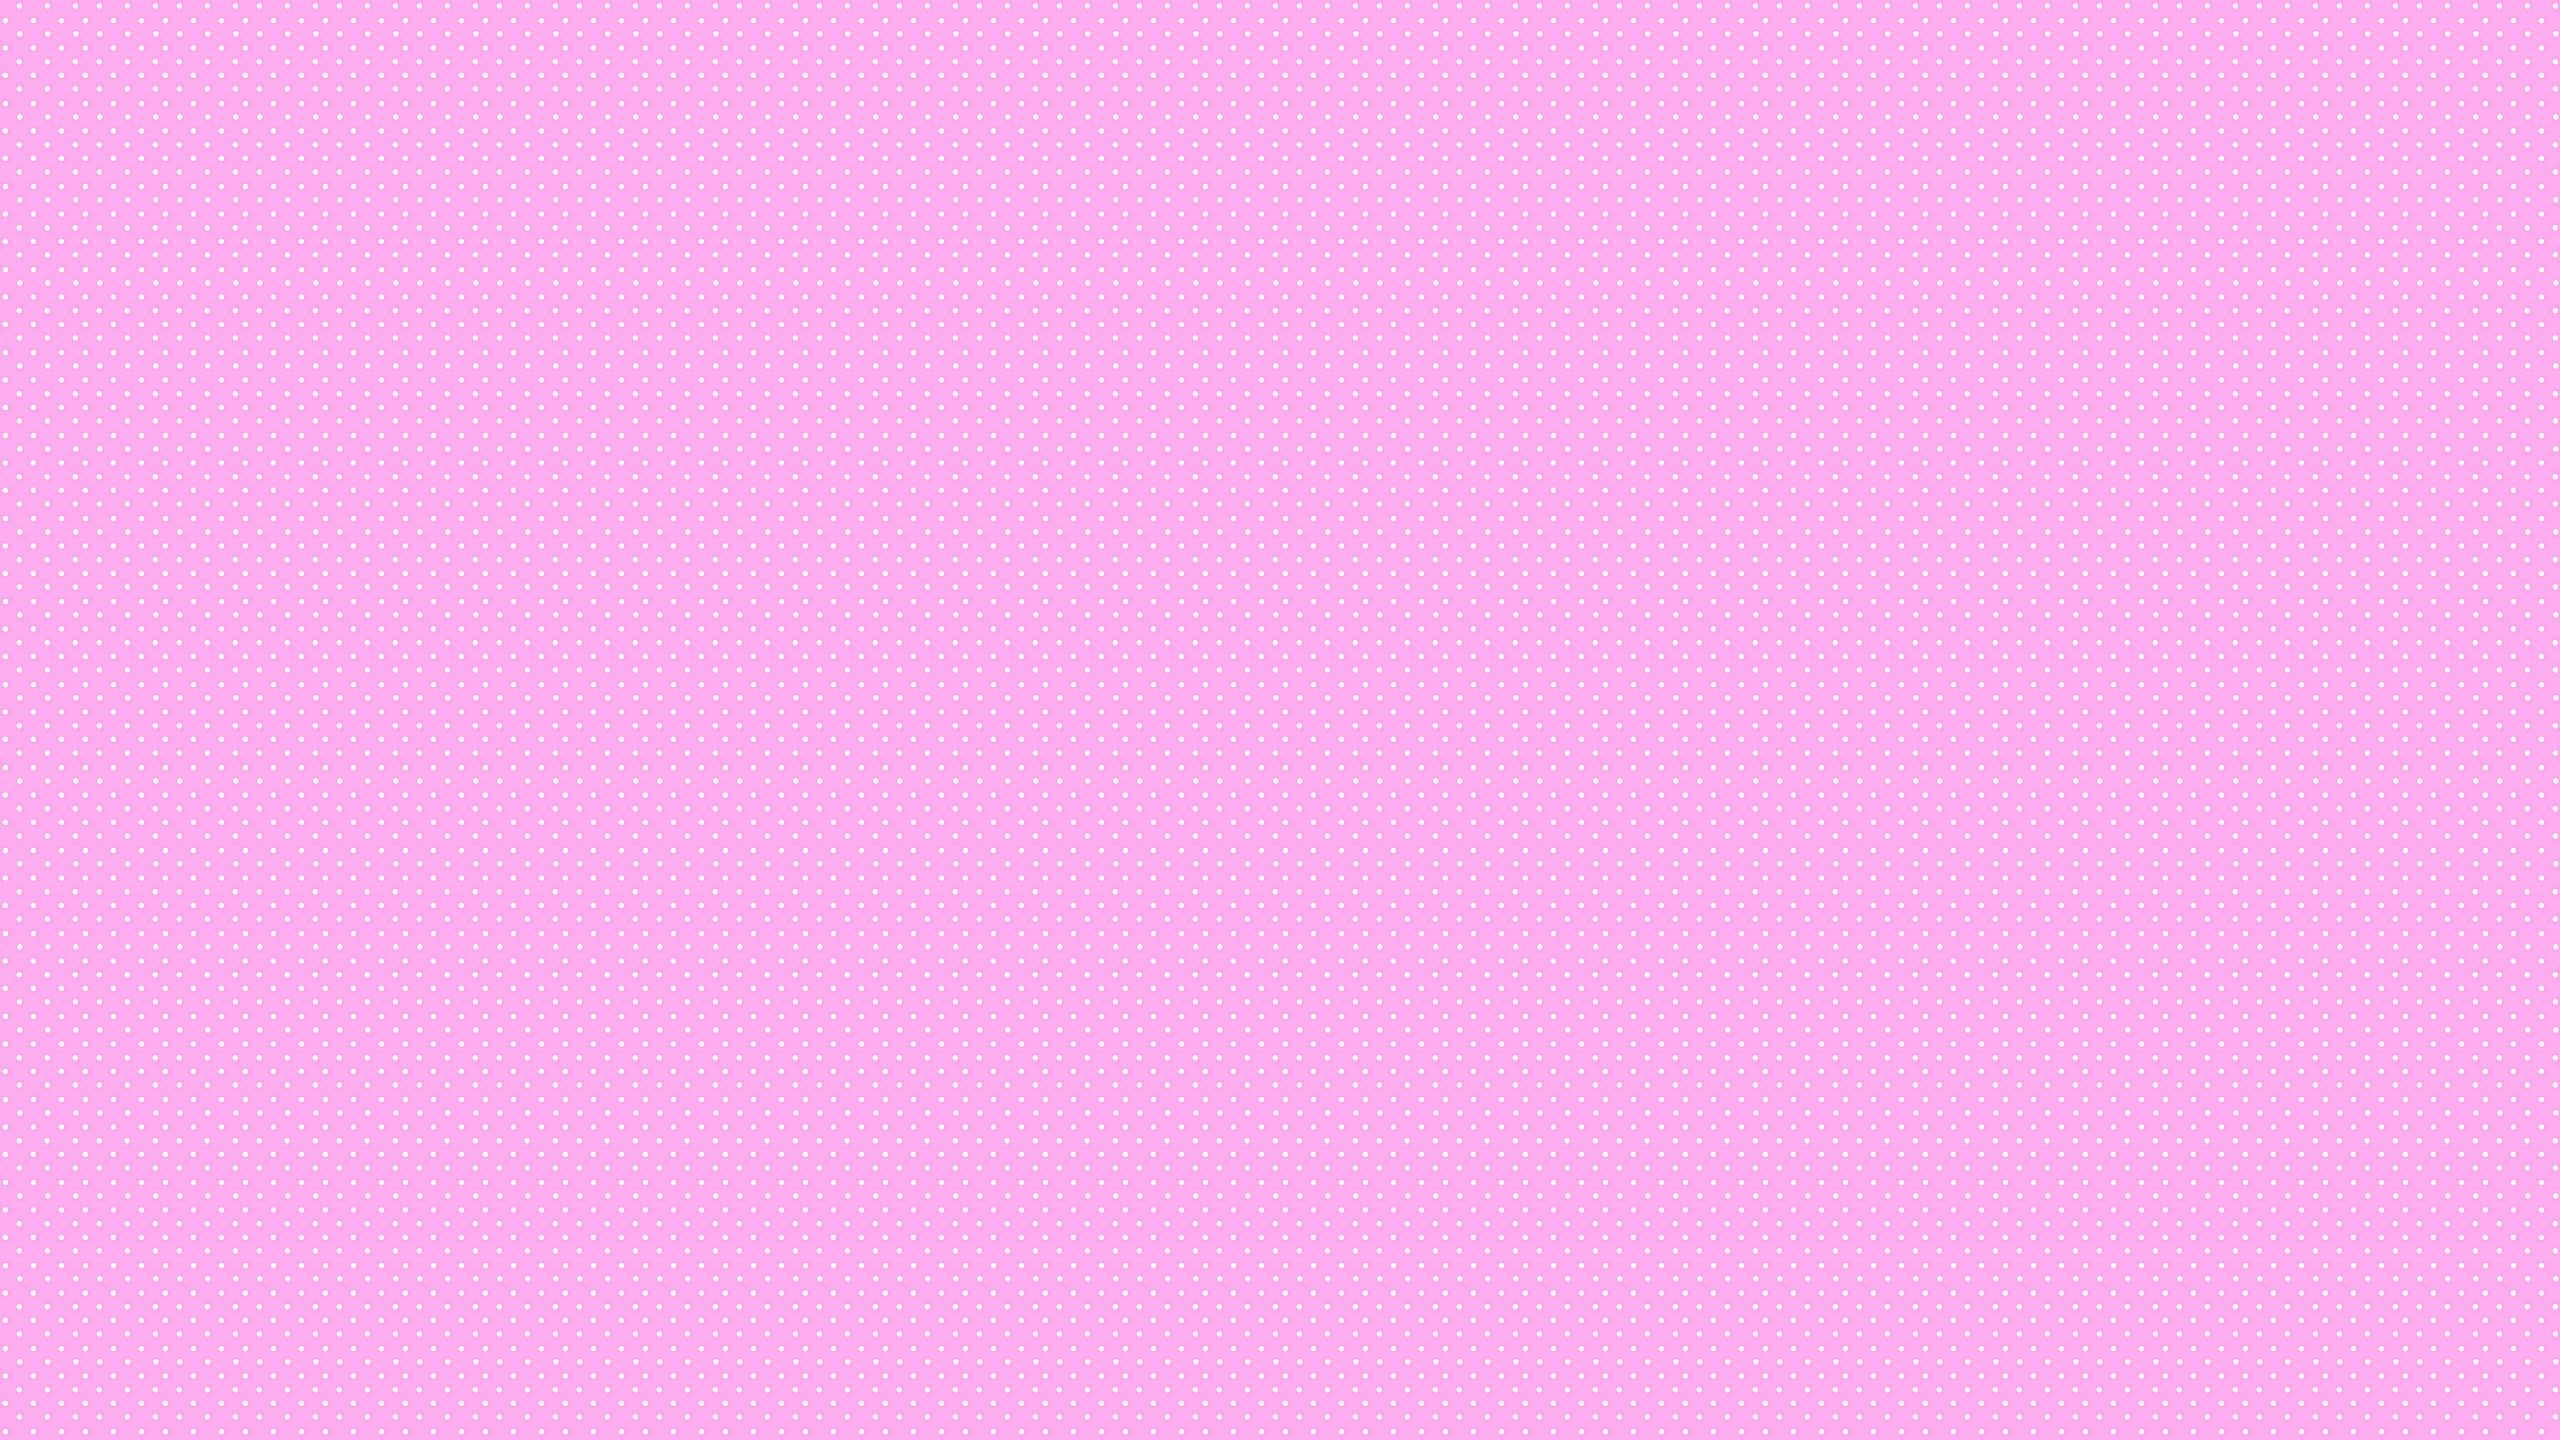 2560x1440 Aesthetic Background Tumblr Download Free Awesome Hd Backgrounds Aesthetic Desktop Wallpaper Pink Aesthetic Pastel Aesthetic